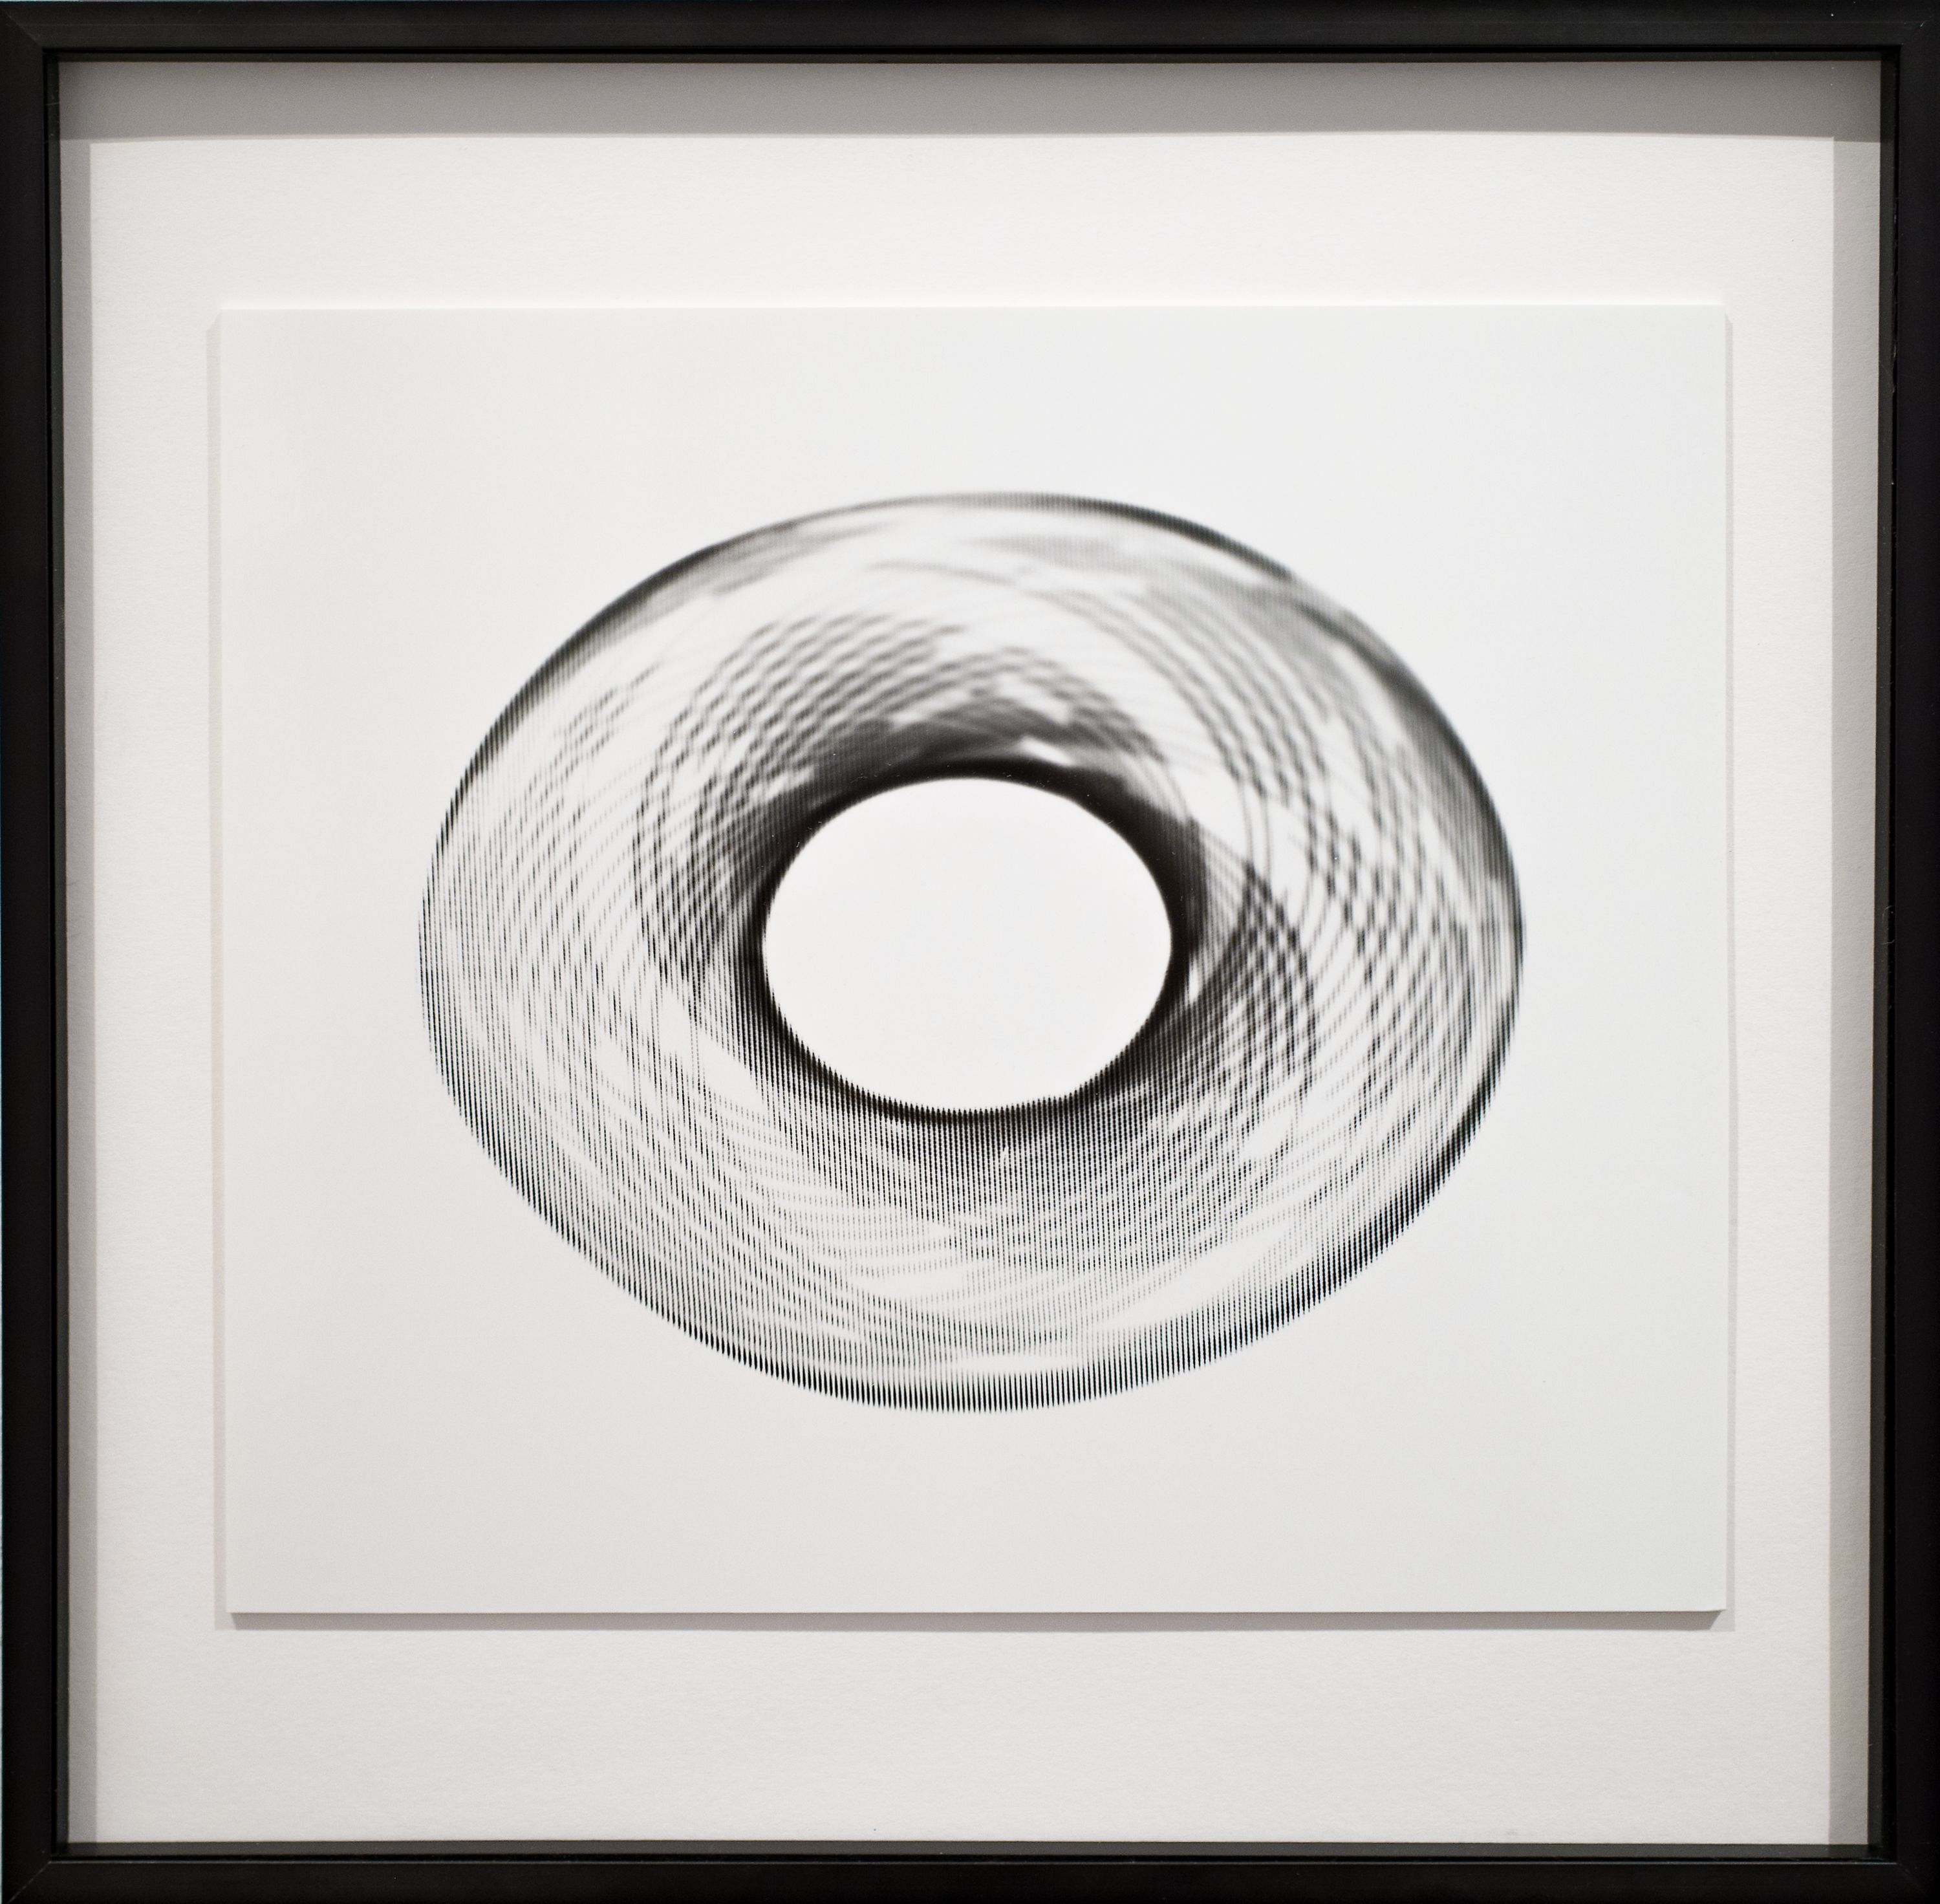 Toroidal Magnetic Field by Antti Pussinen, Luisa Catucci Gallery (2 of 3)